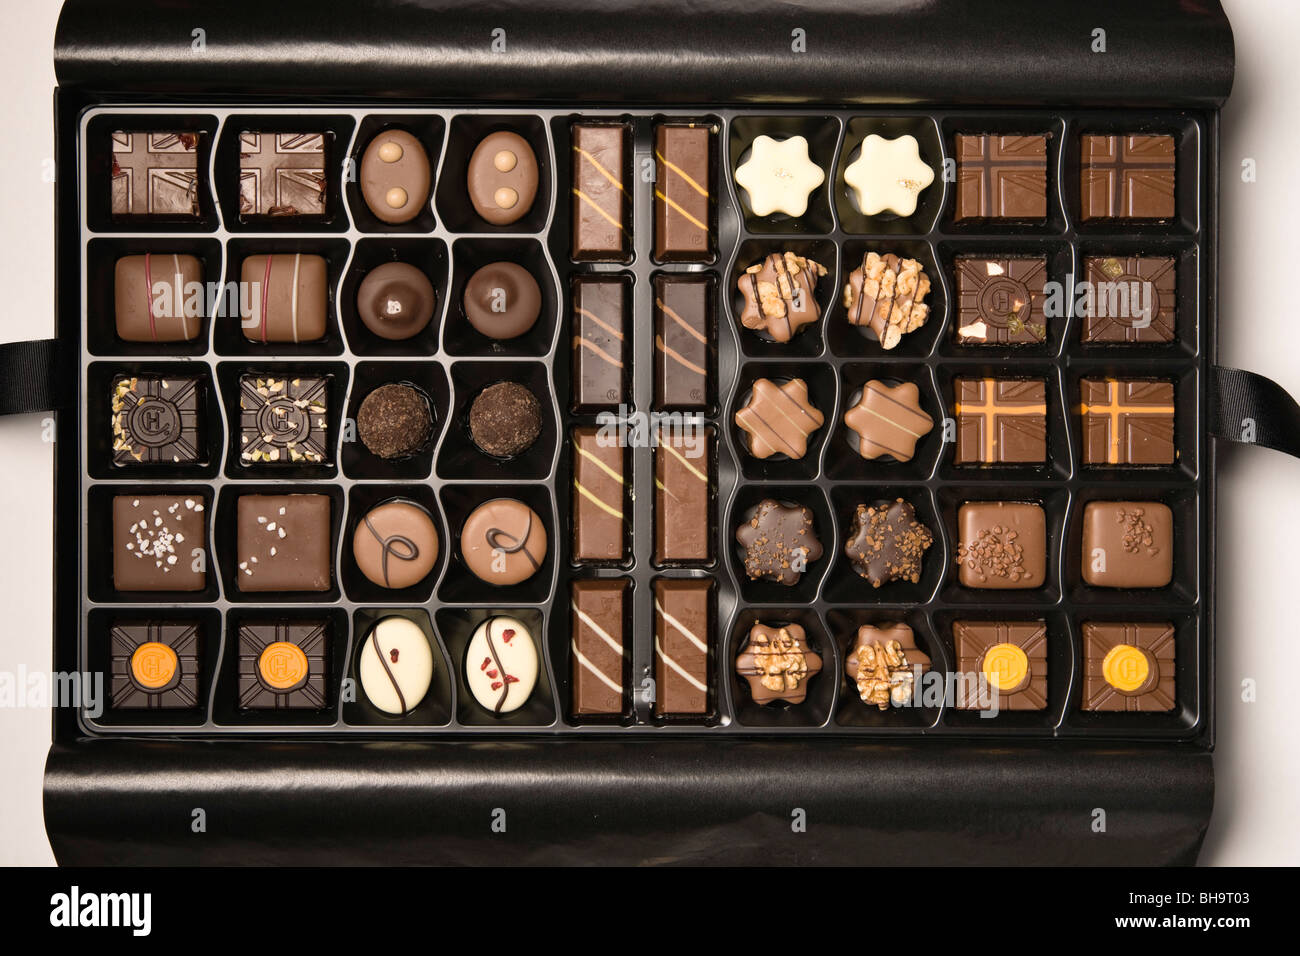 Luxury Hotel Chocolat hand made chocolates in UK (2009 Christmas selection) showing the HC logo stamp - Stock Image